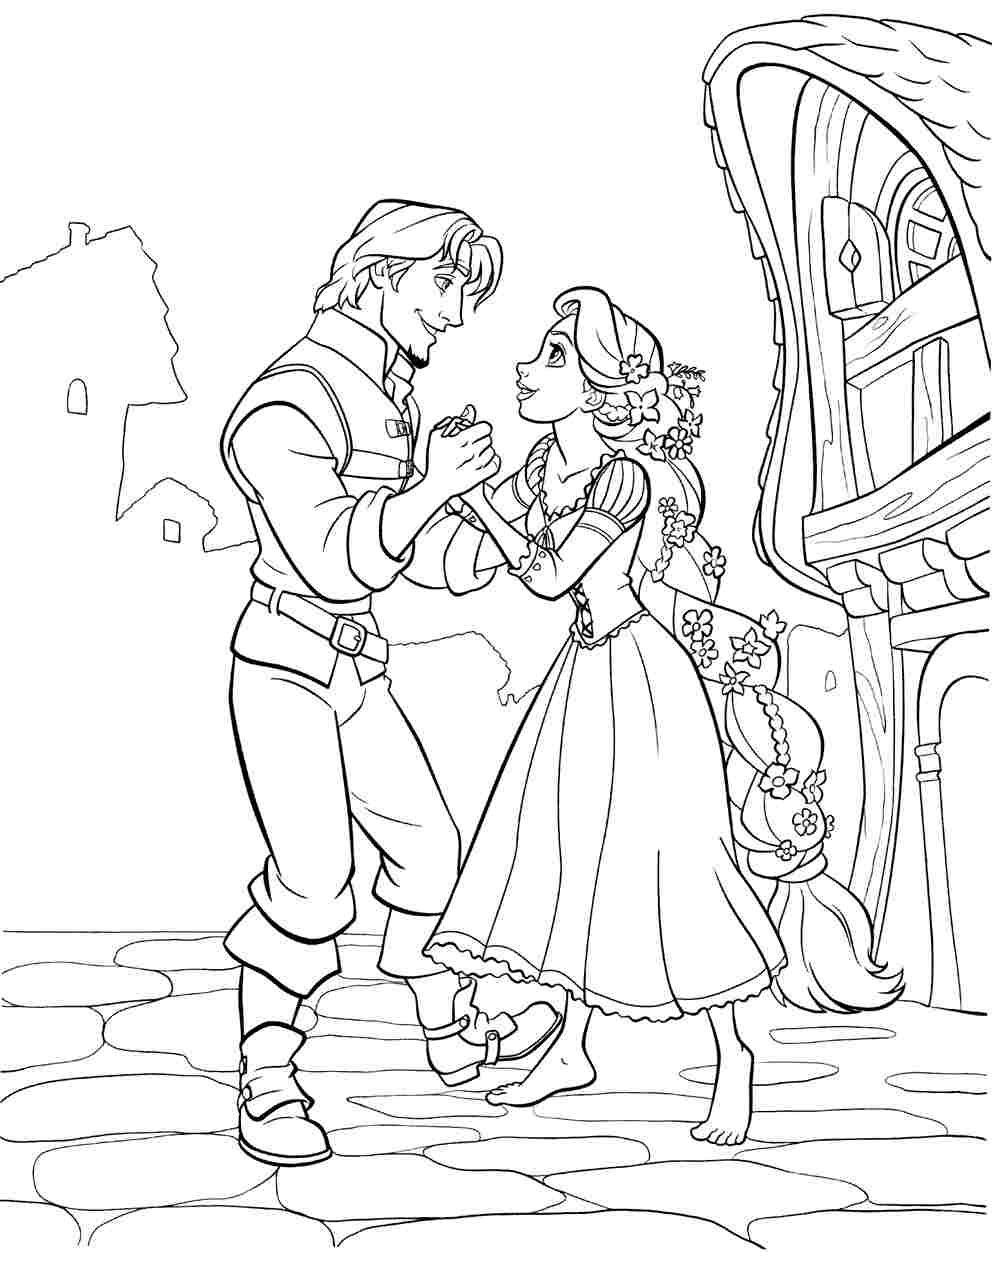 Disney Princess Tangled Rapunzel Coloring Sheets Free